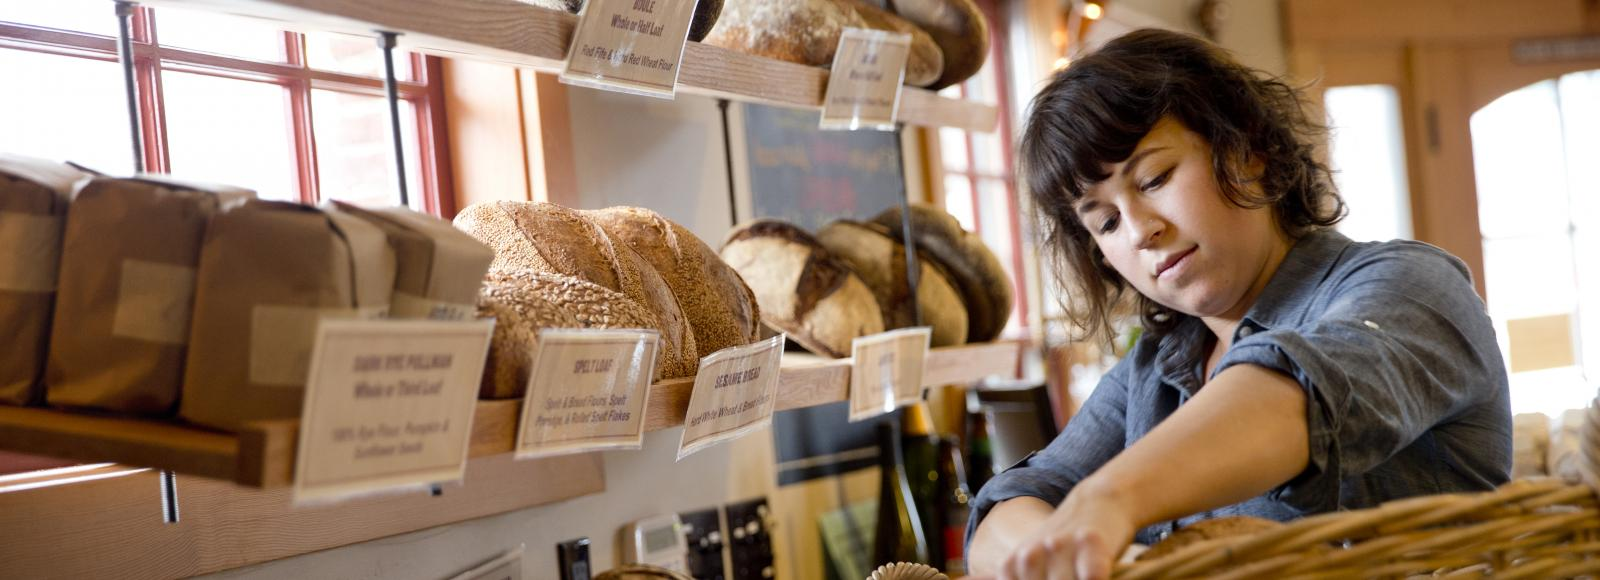 Emily Francis, an employee at Tabor Bread, moves fresh loaves from a basket onto their wooden display racks at the front of the bakery.